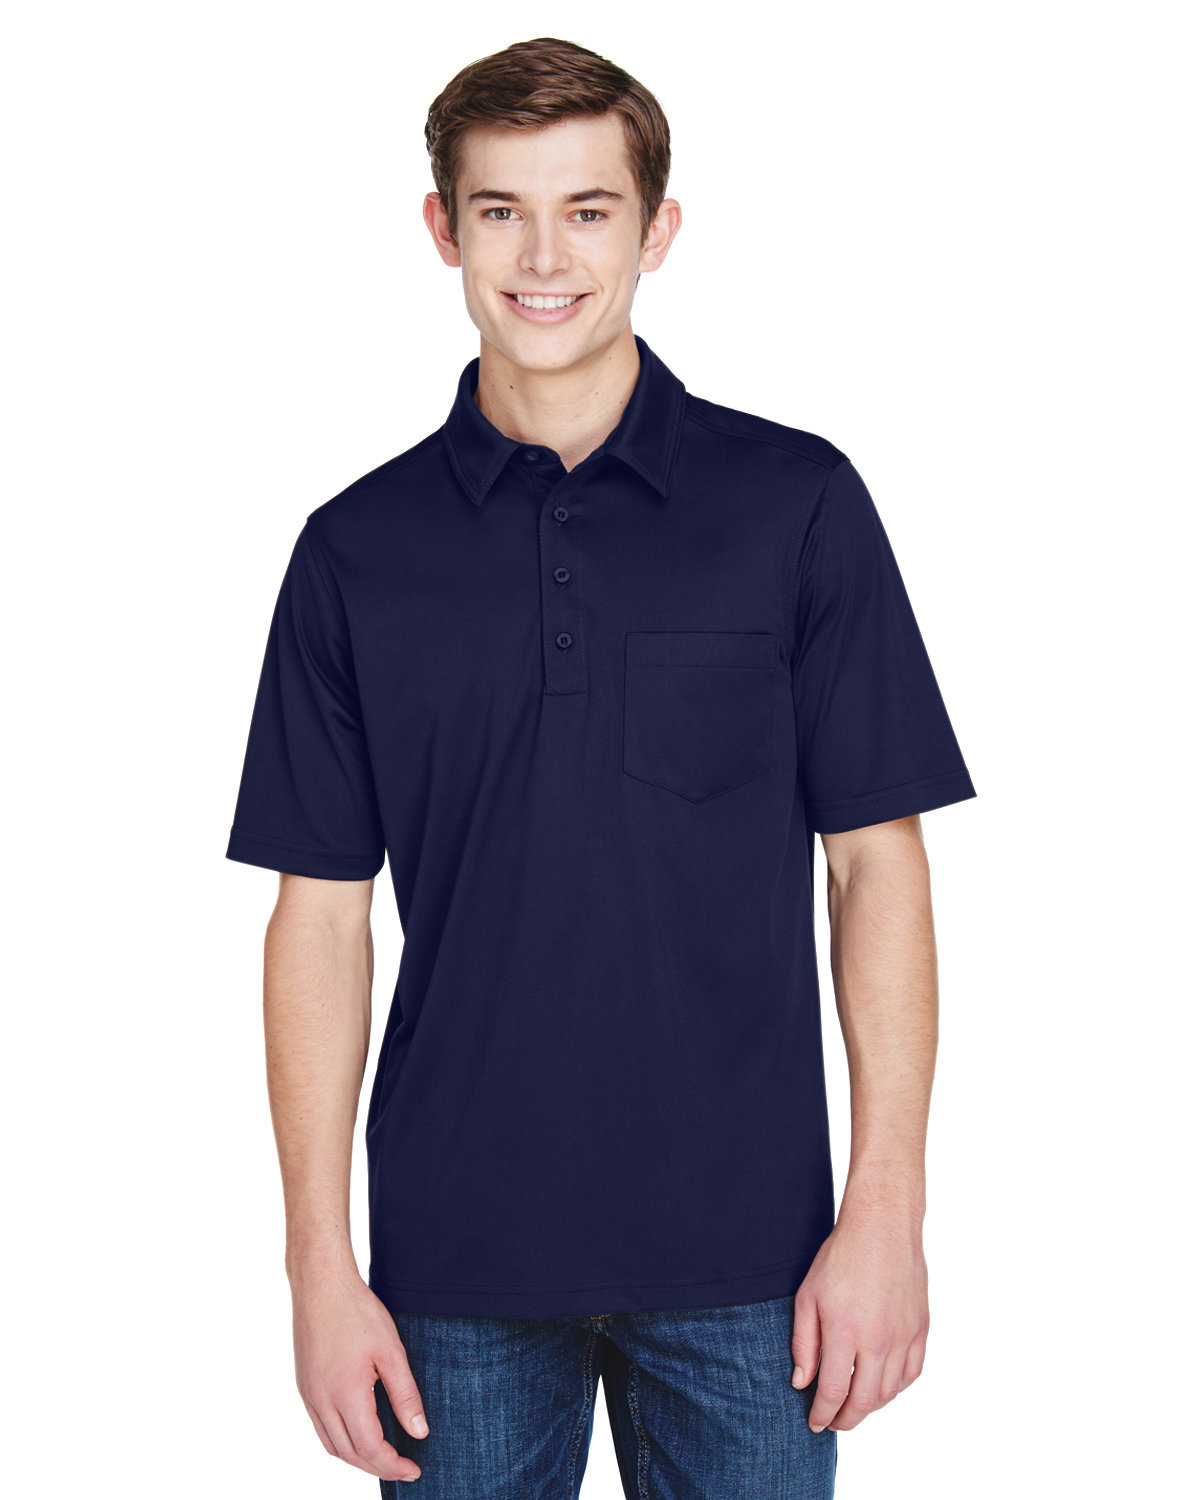 Extreme Men's Eperformance™ Shift Snag Protection Plus Polo CLASSIC NAVY